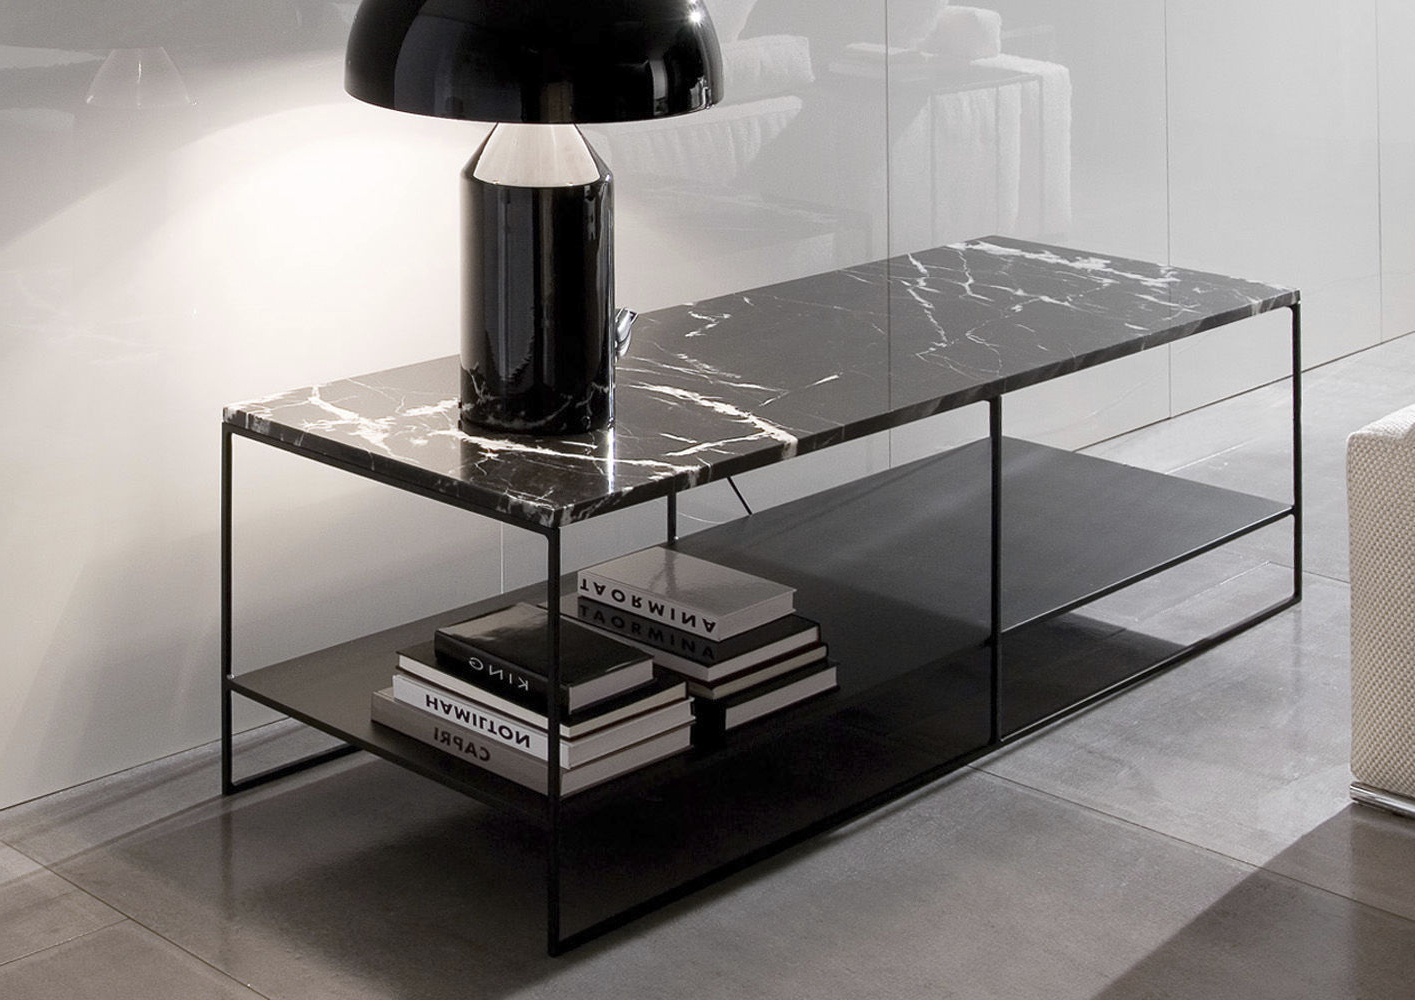 Dark Smoked Oak With White Marble Top Sideboards Inside Well Known Contemporary Sideboard Table / Marble / Oak / Iron – Calder – Minotti (View 20 of 20)